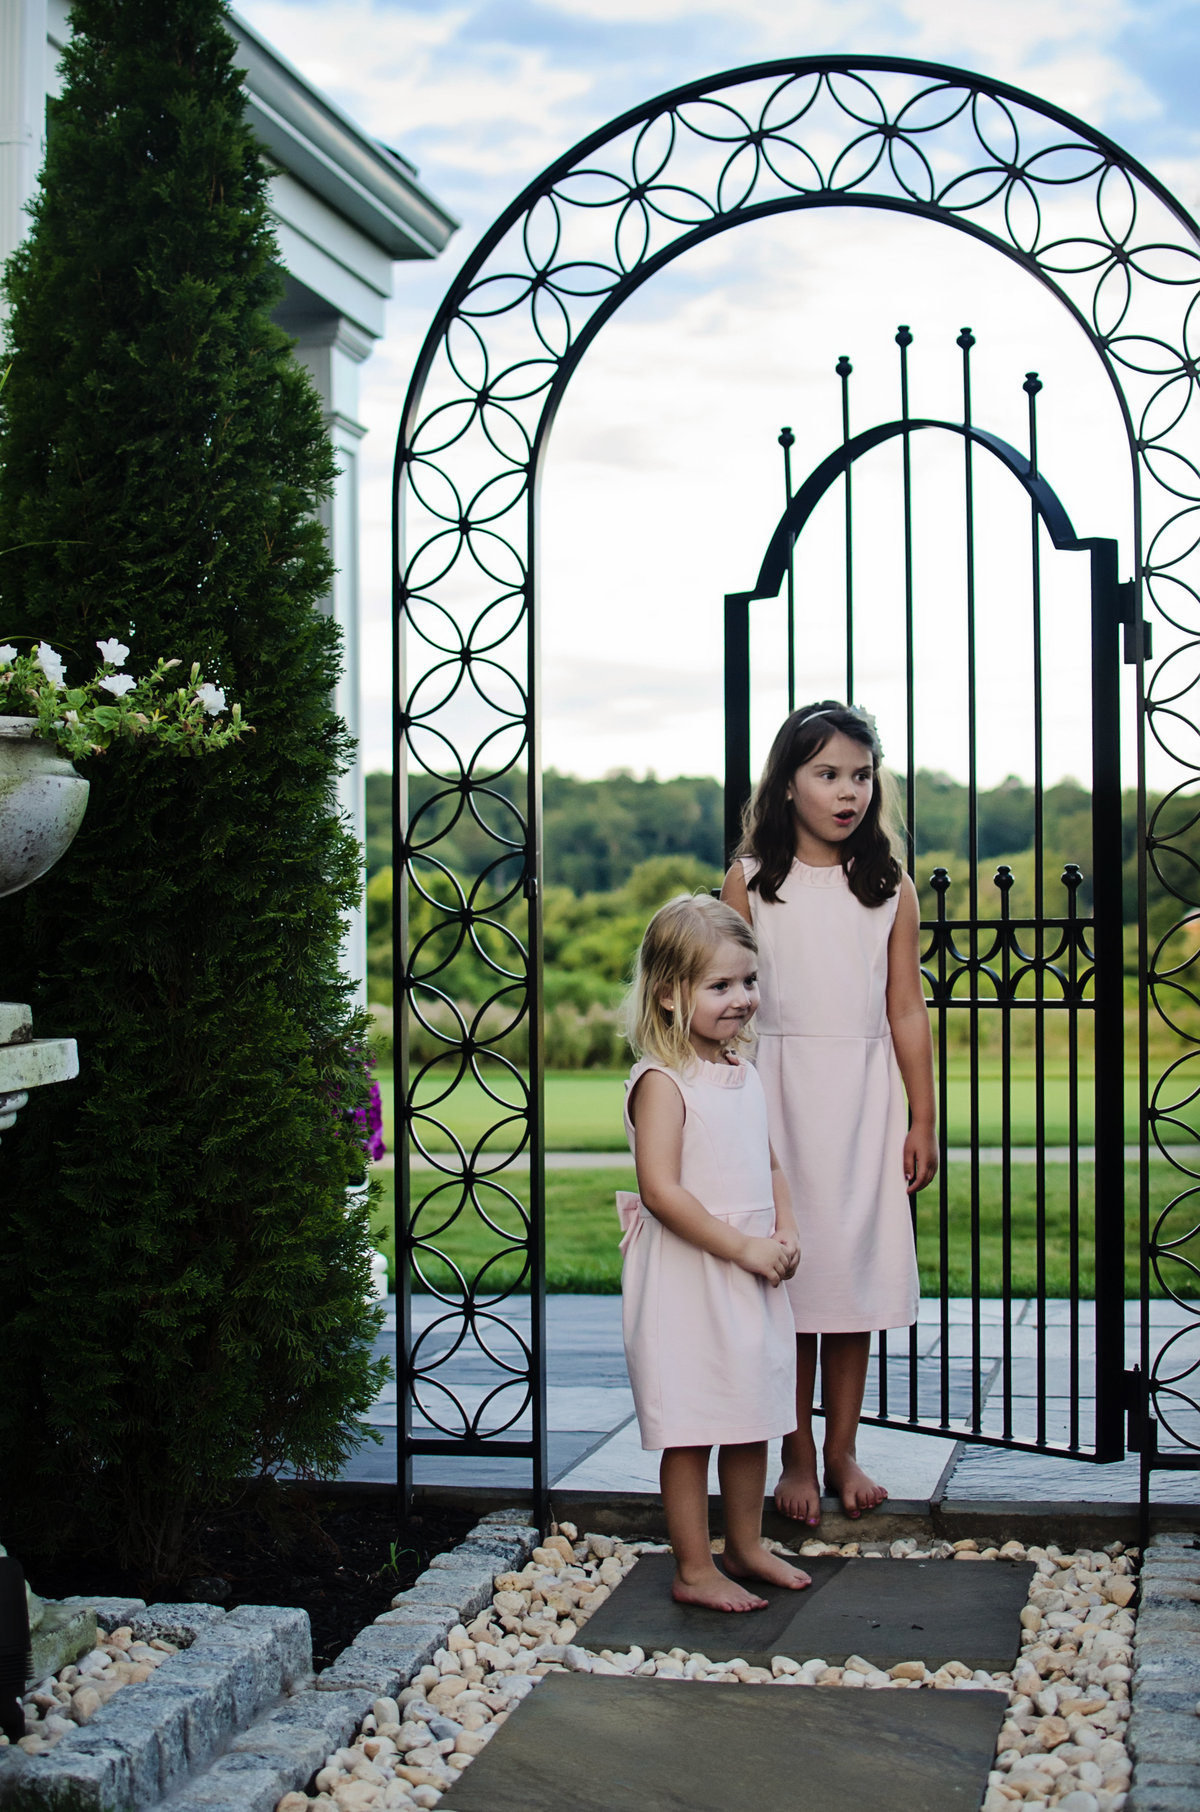 Lifestyle portrait session at a country club taken by Sarah Alice Photography in Northern Virginia